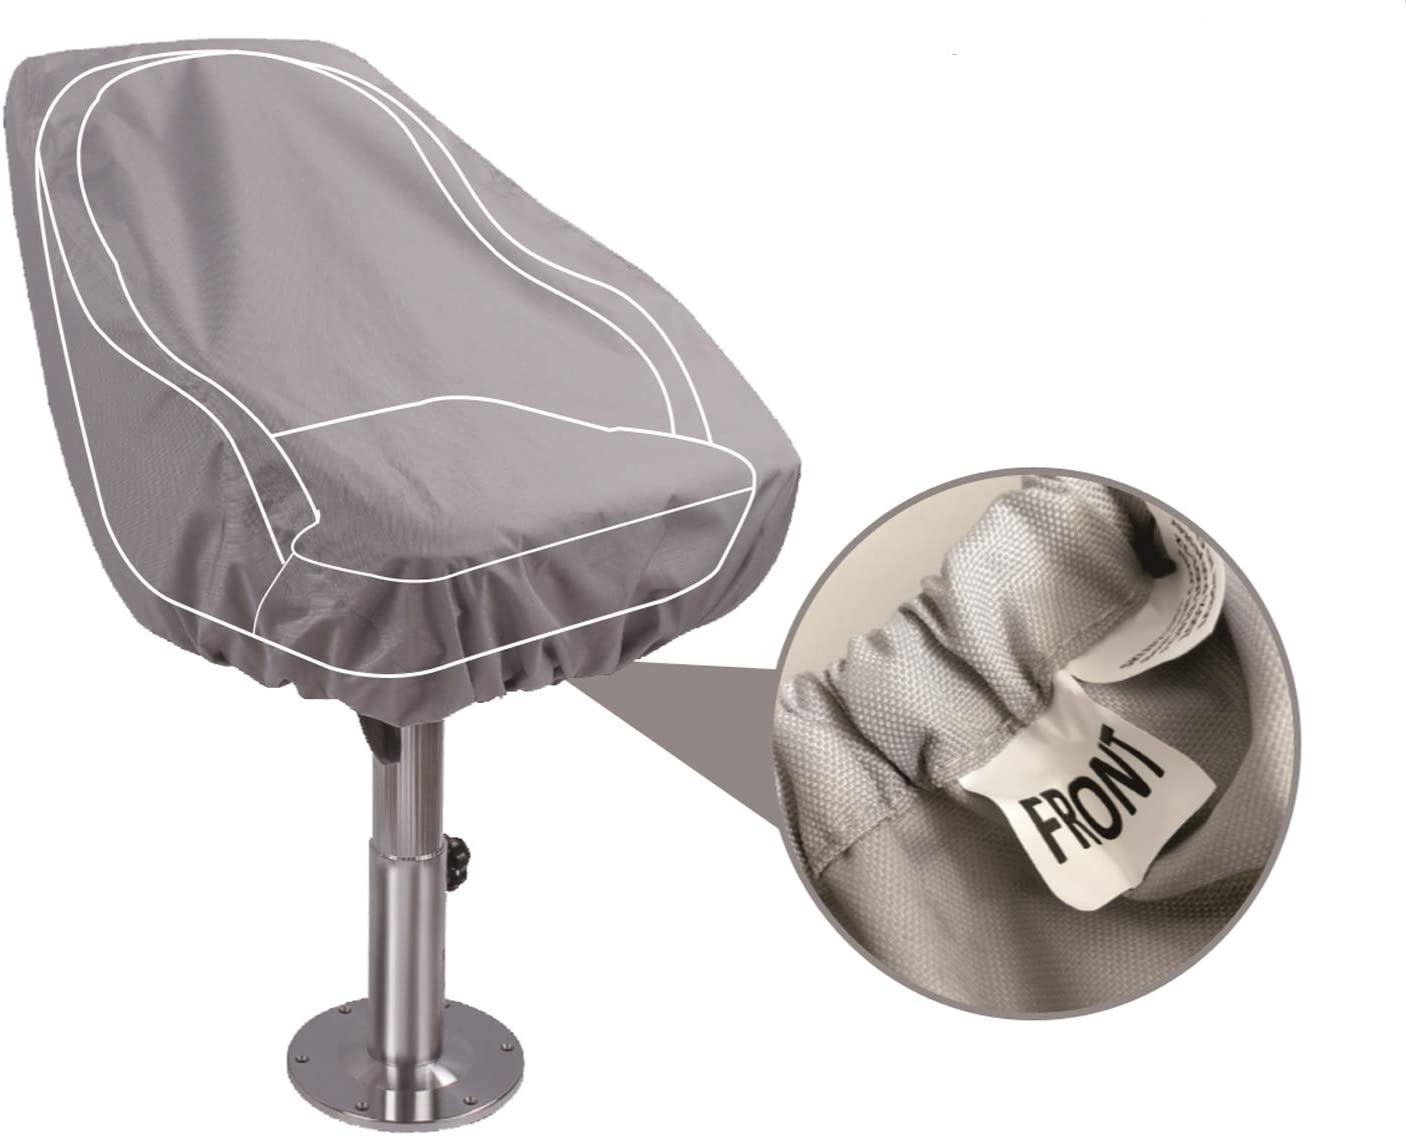 NORTHCAPTAIN Pontoon Boat Seat Captain Bucket Seat with Boat Seat Cover